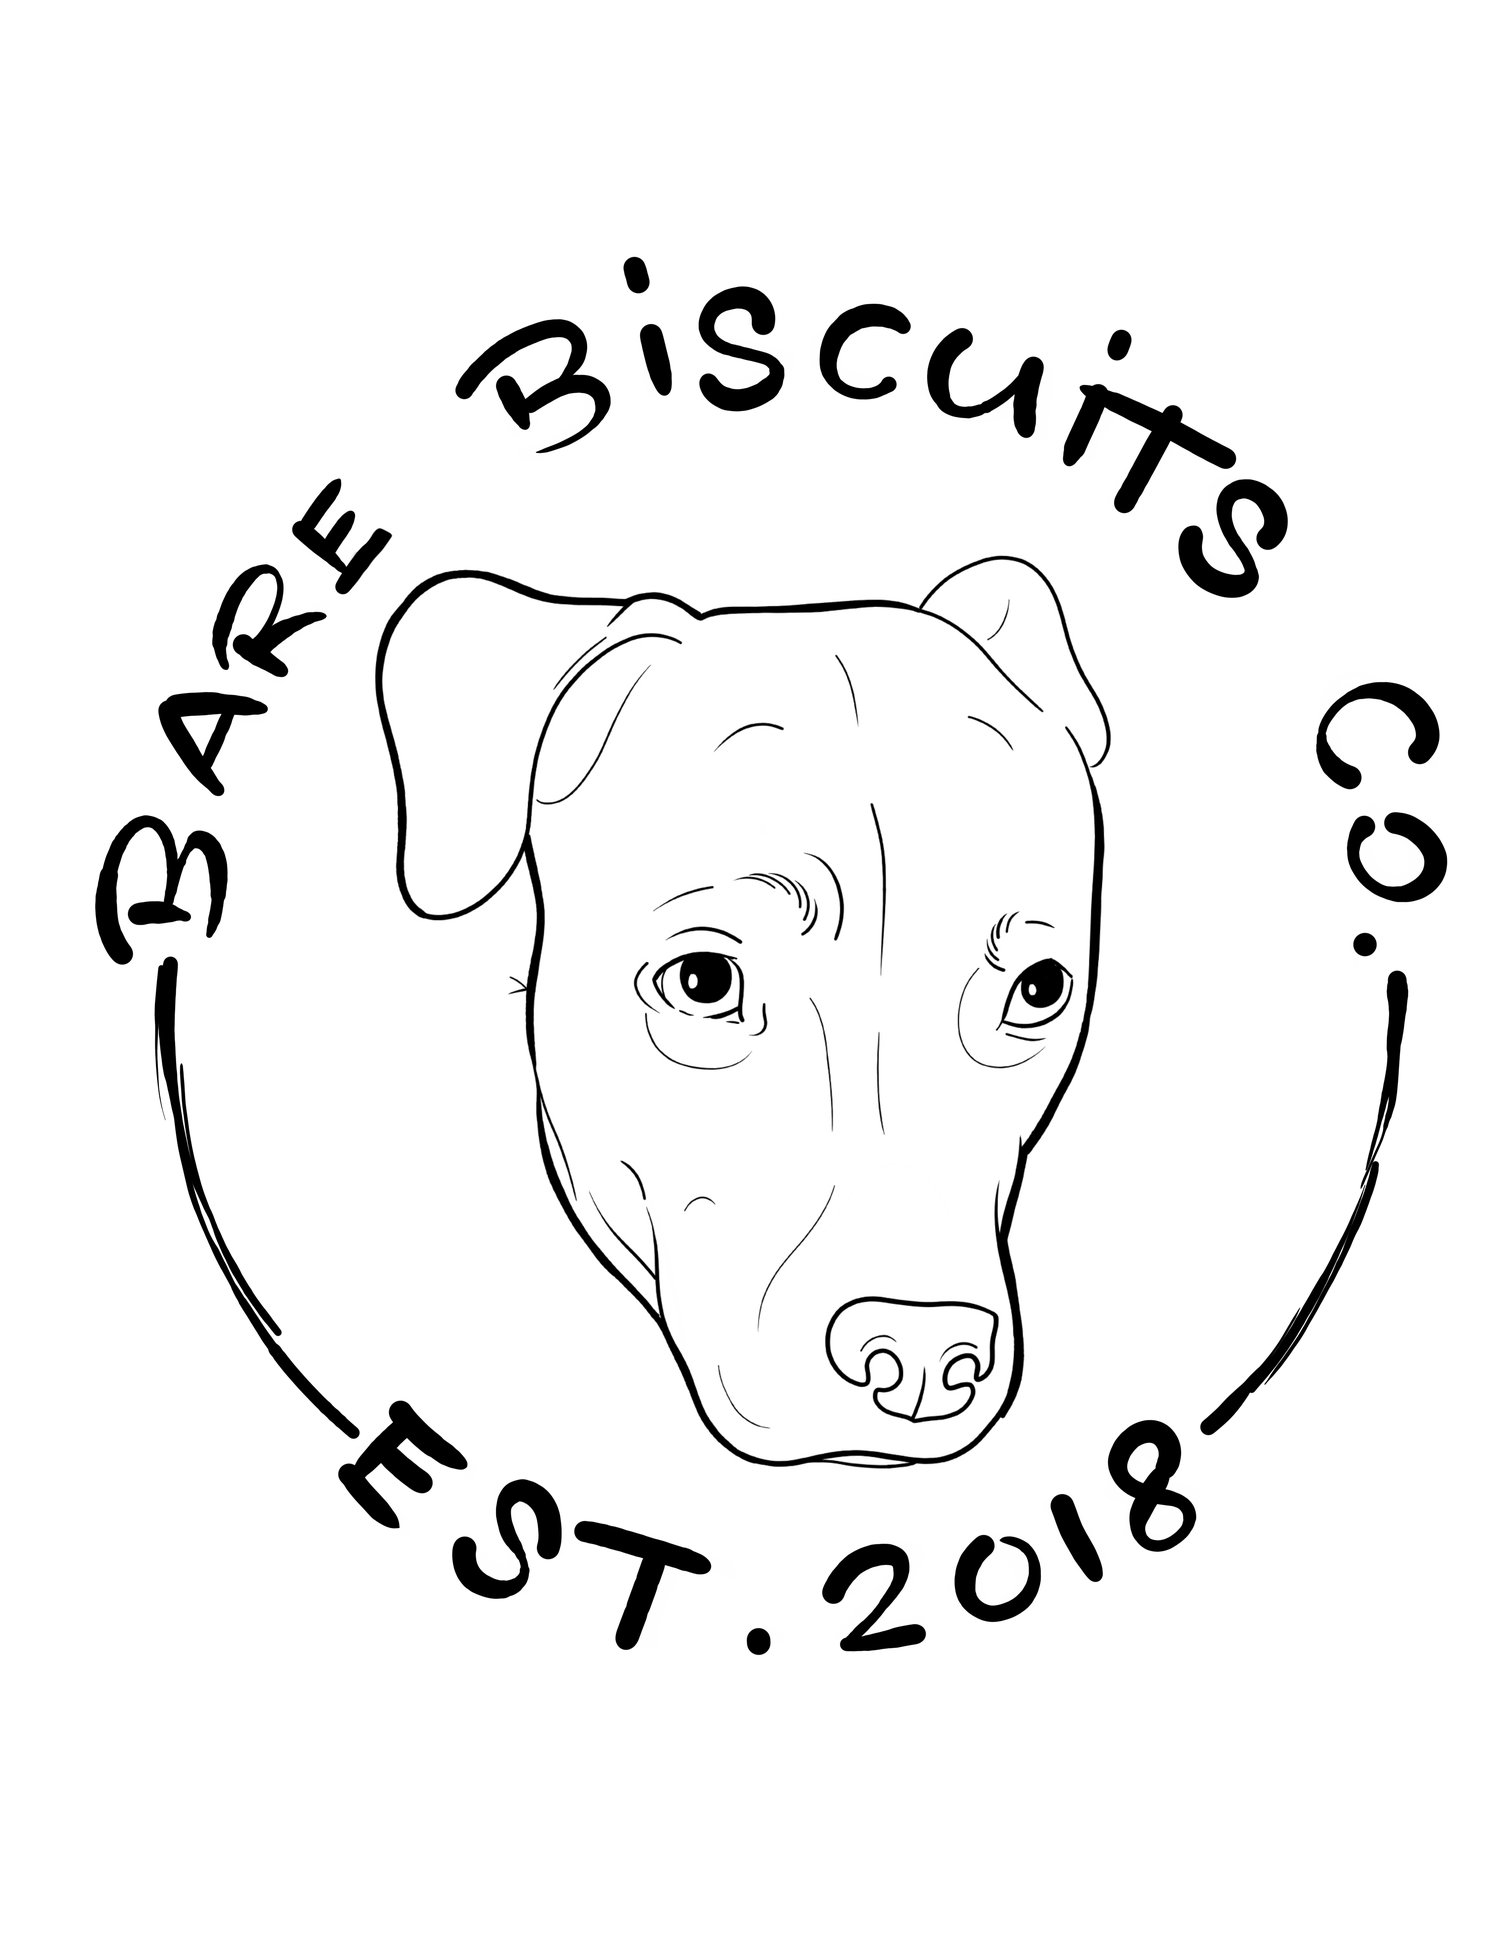 Bare Biscuits Co.